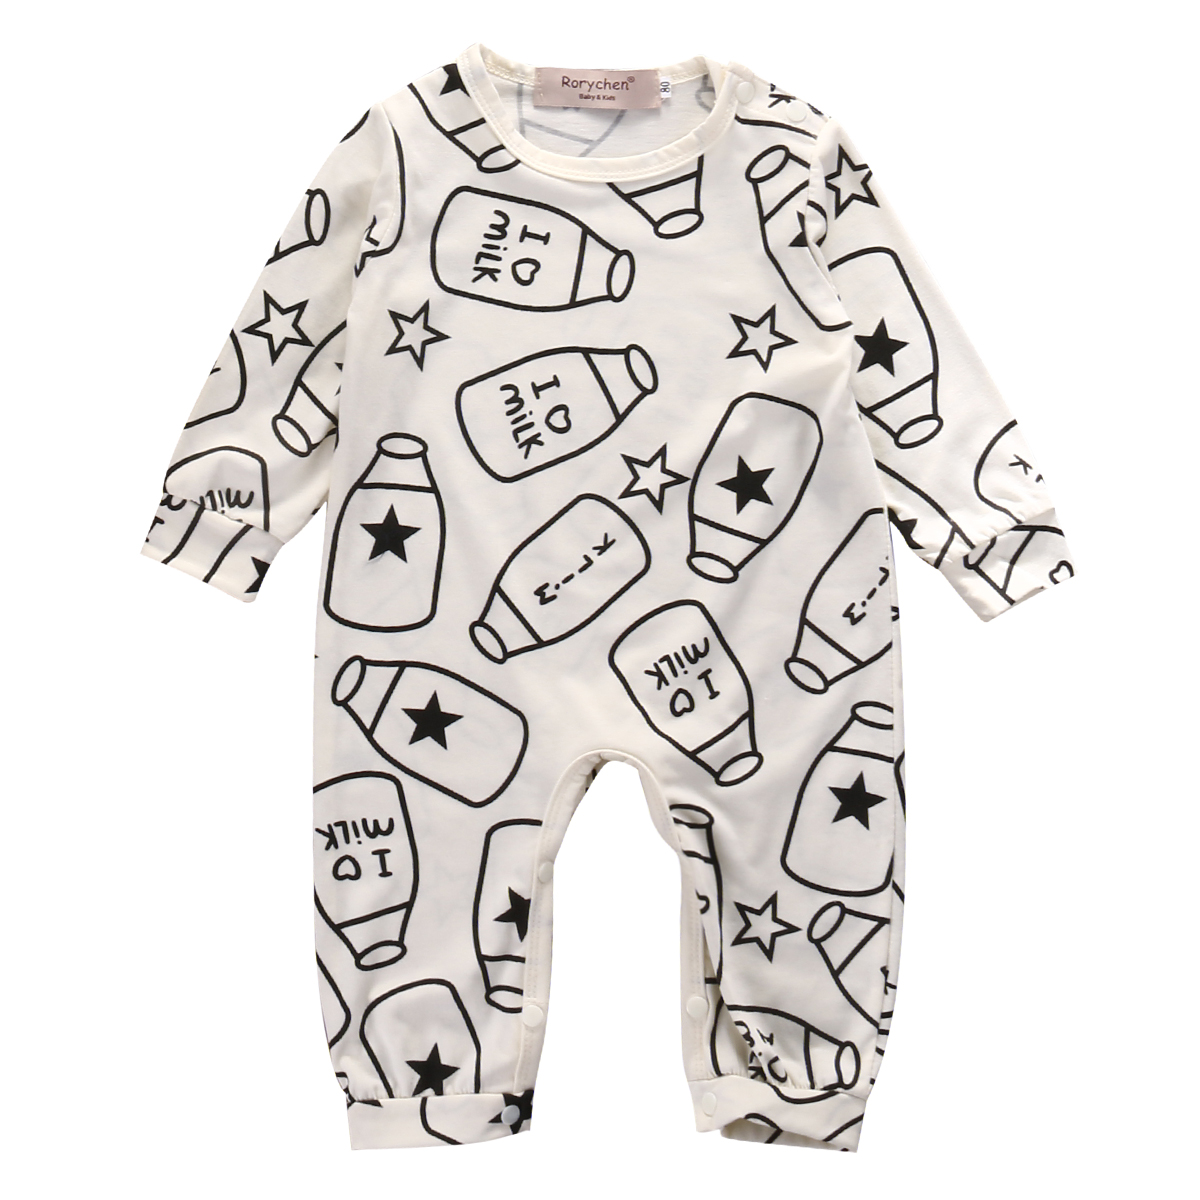 Baby Kids Boy Girl Clothing Warm Infant Romper Jumpsuit Long Sleeve Cotton Clothes Baby Boys Outfit